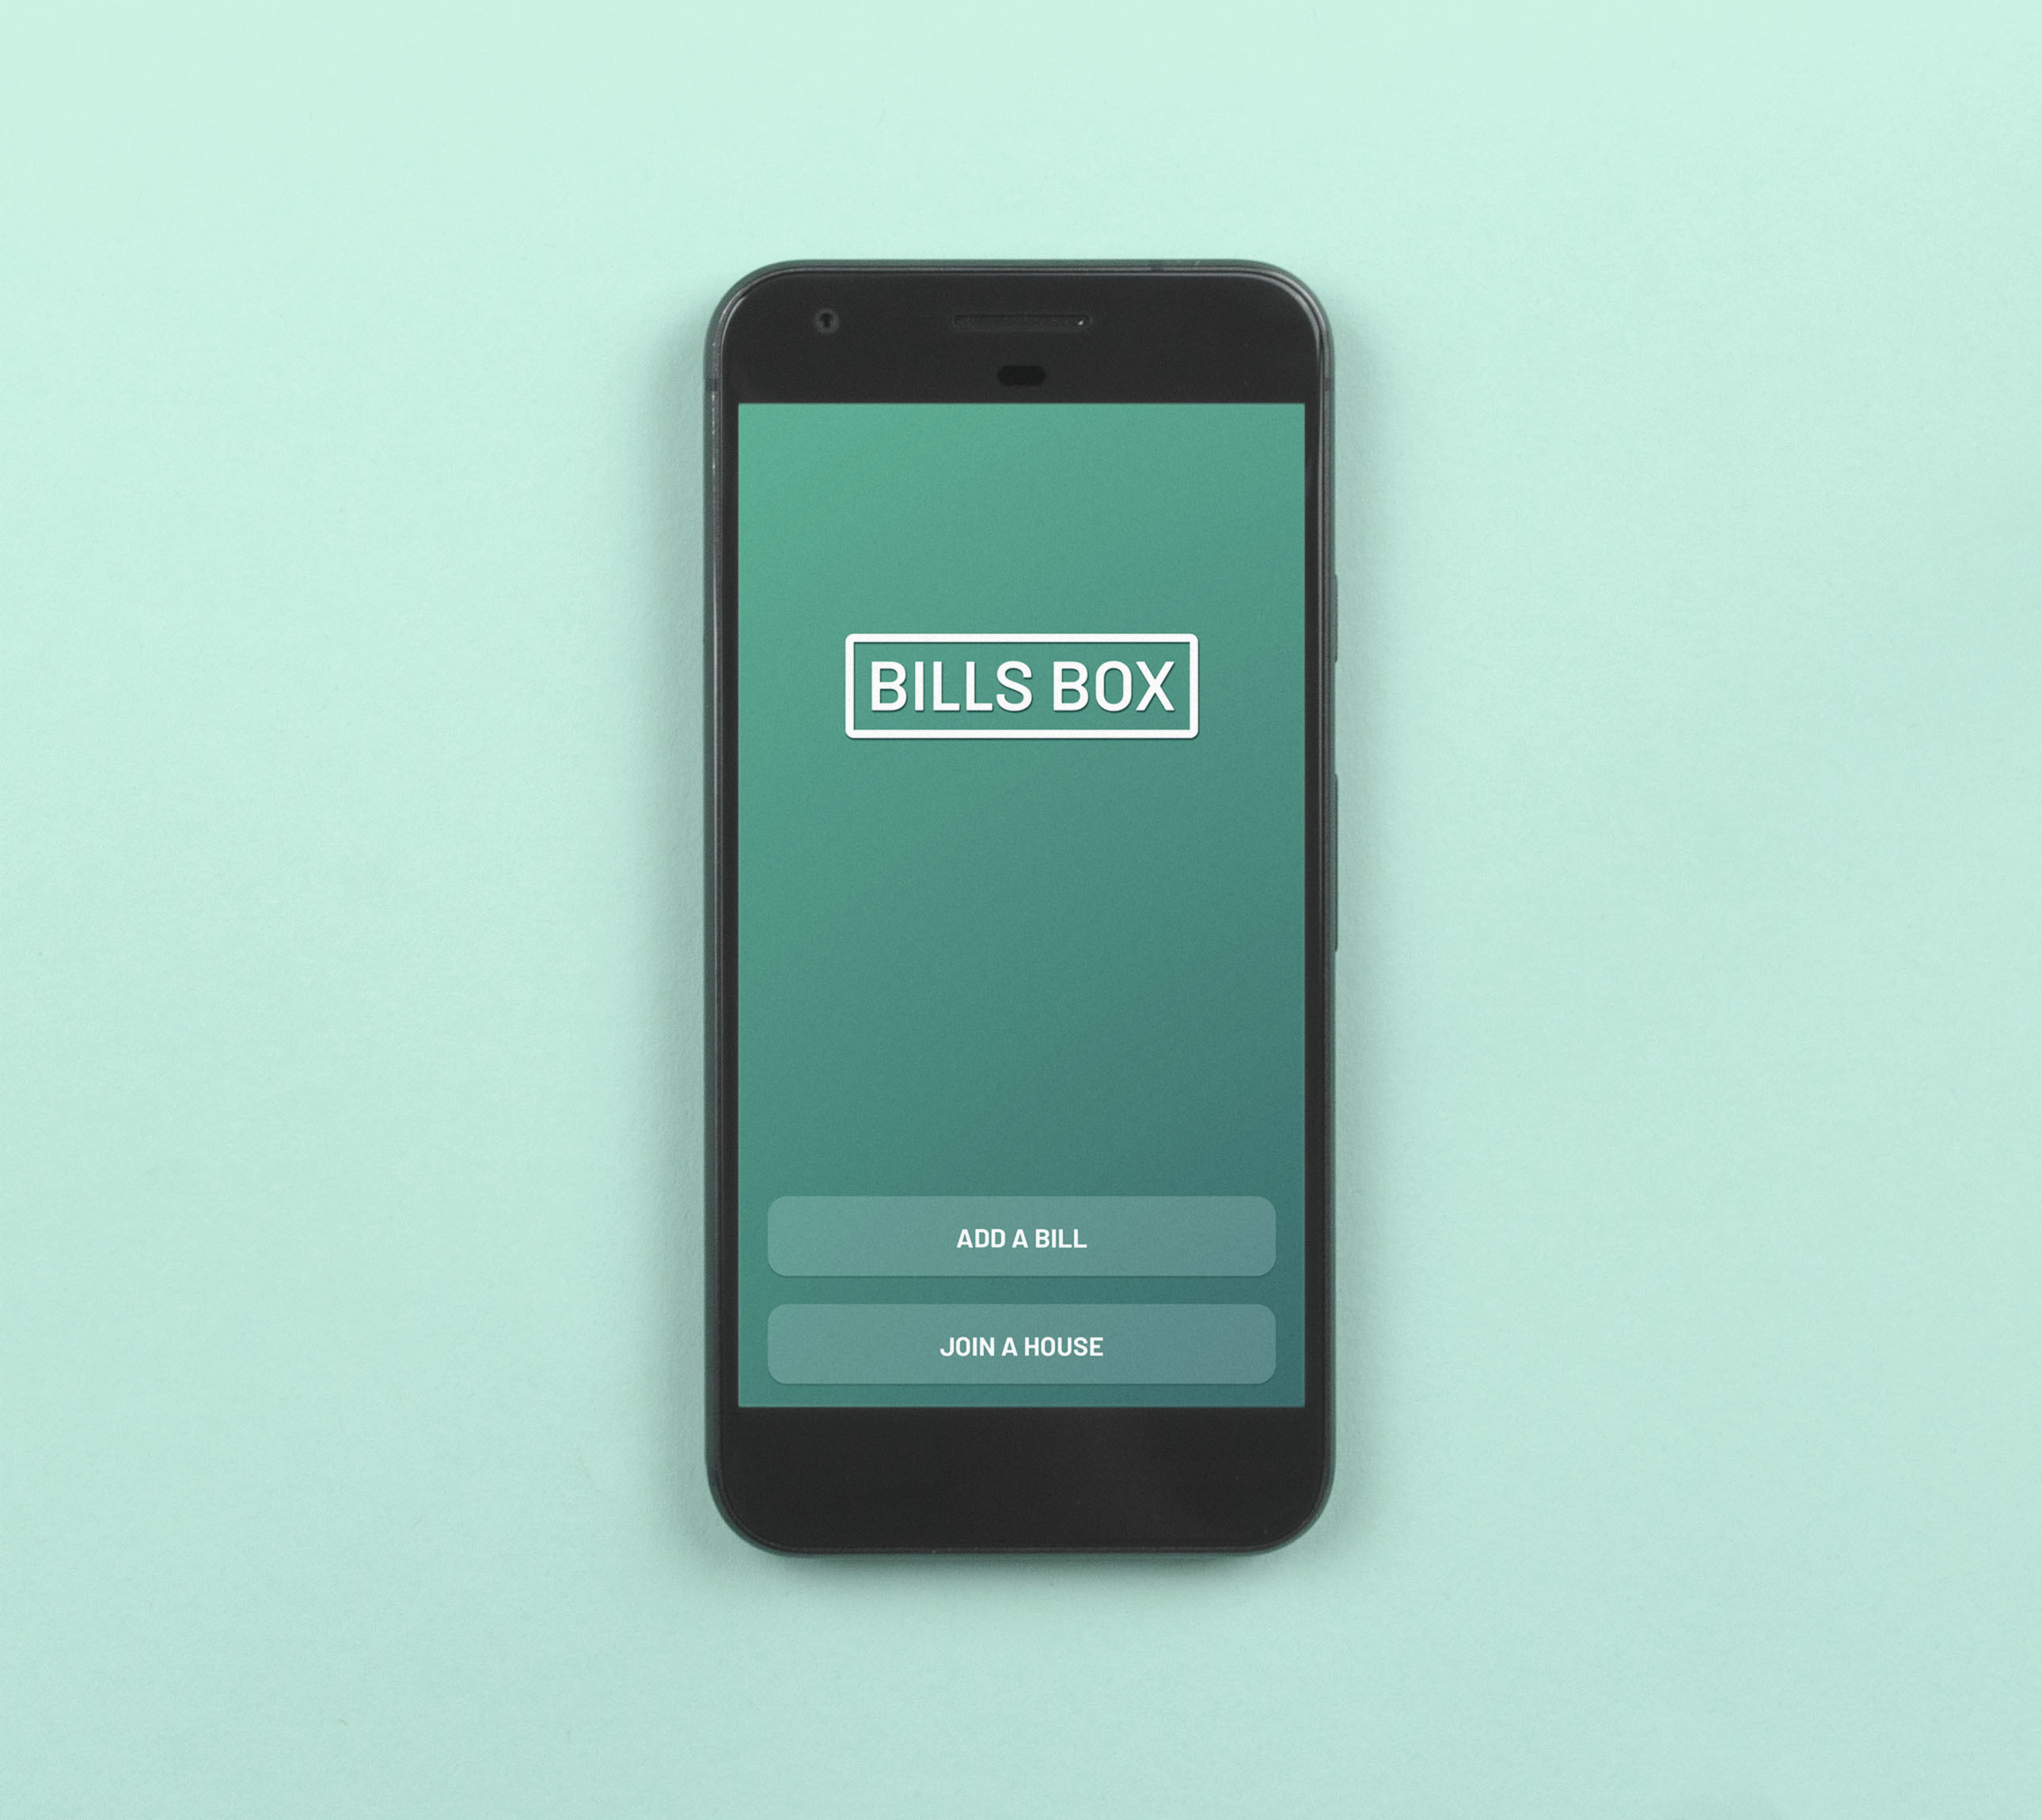 Bills box app launch screen showing 'add an account' and 'join house' buttons